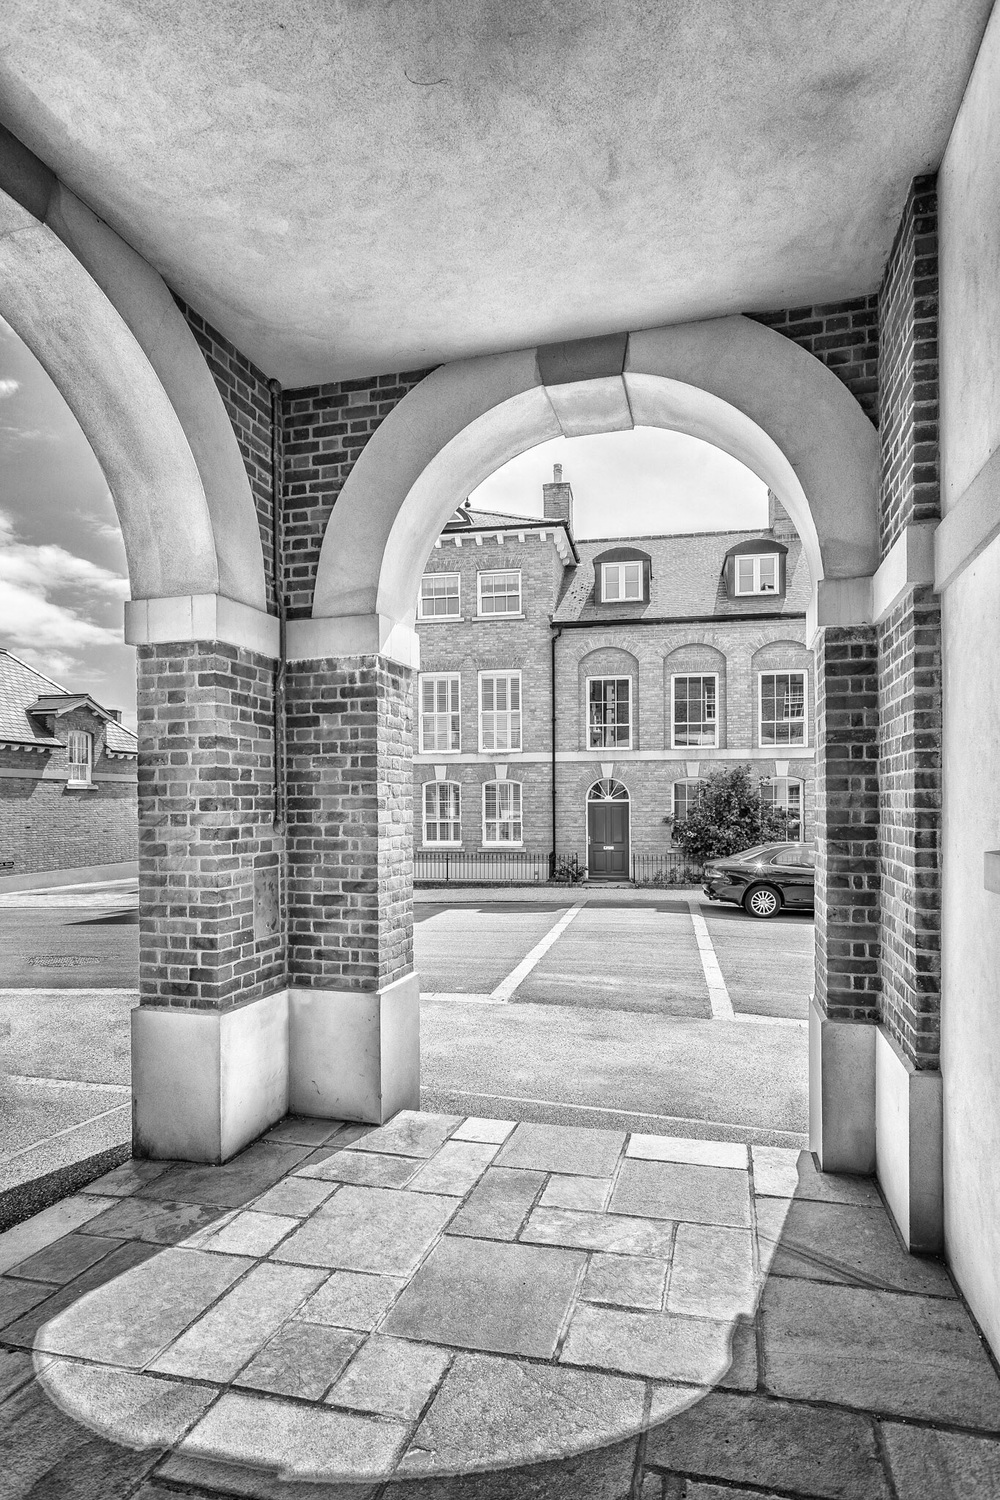 Housing development, Poundbury, Dorset